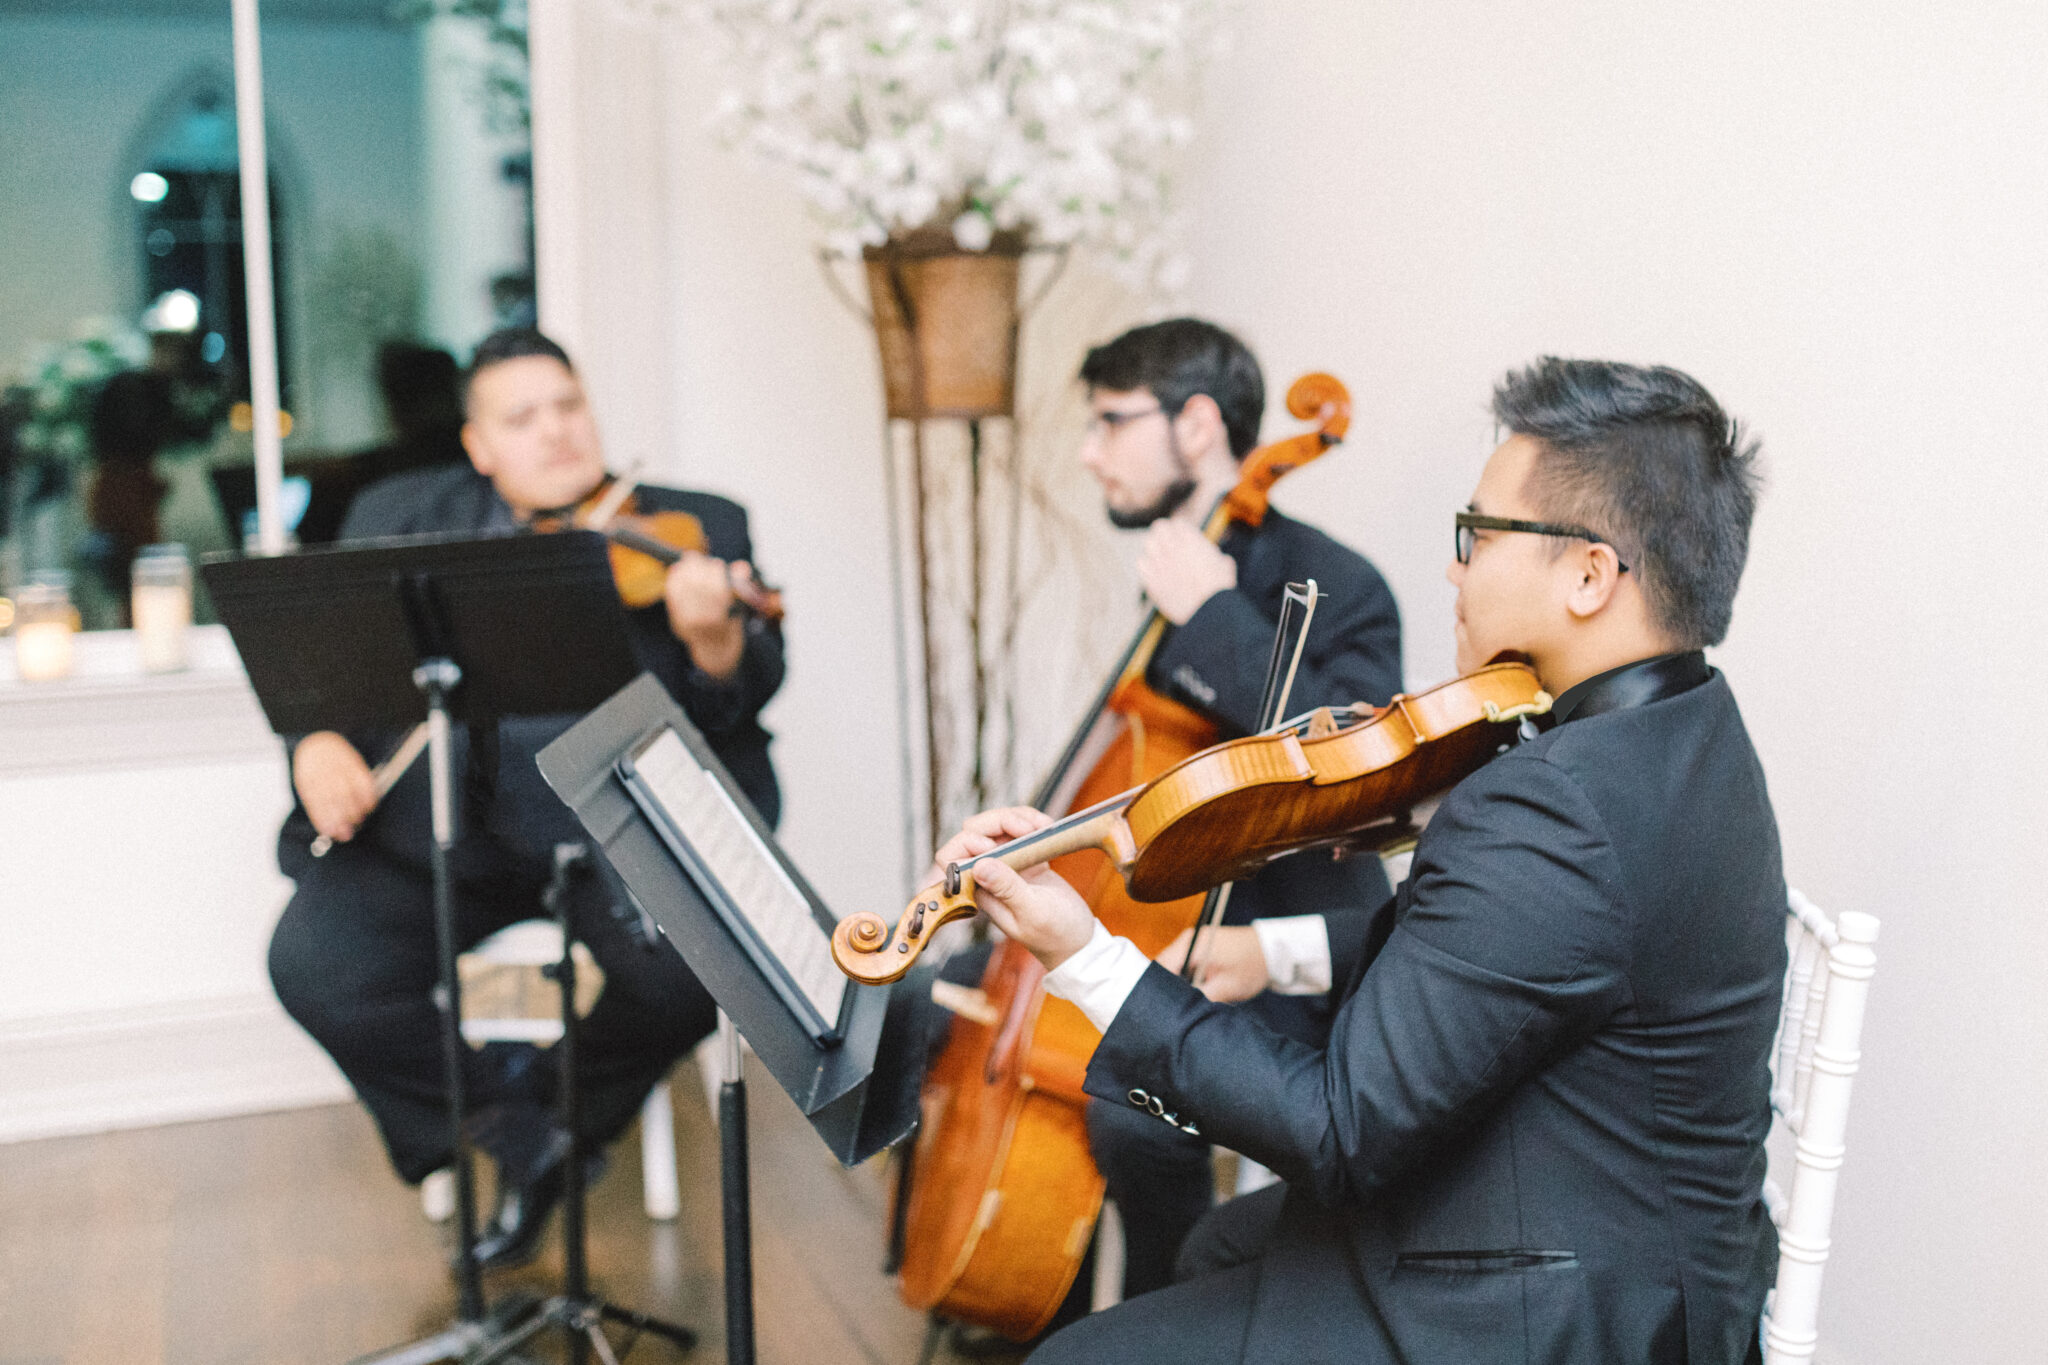 The Park Savoy, one of EMG's most visited venues